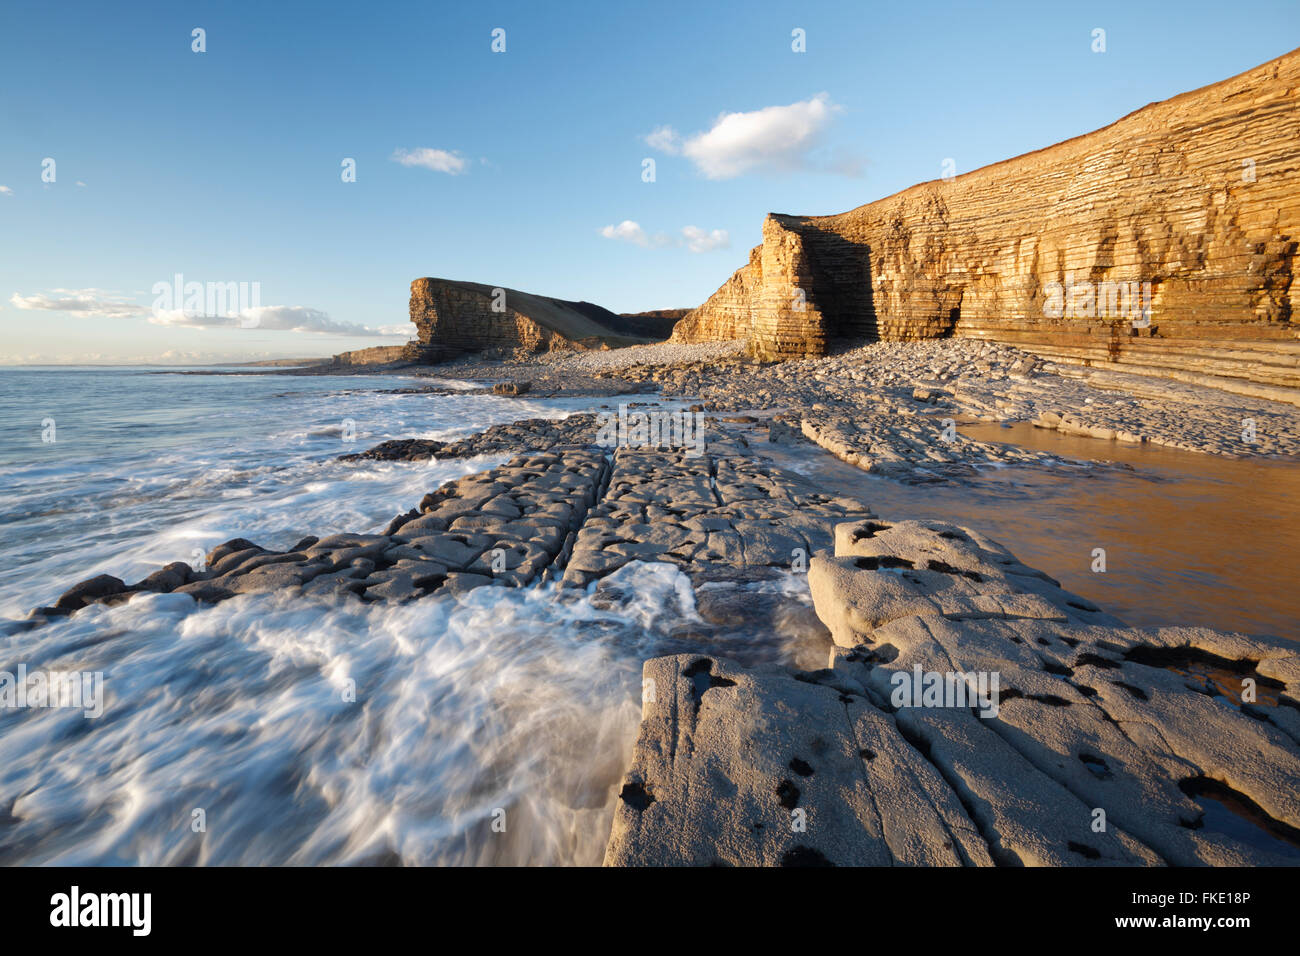 Nash Point. La côte du Glamorgan. Vale of Glamorgan. Le Pays de Galles. Photo Stock